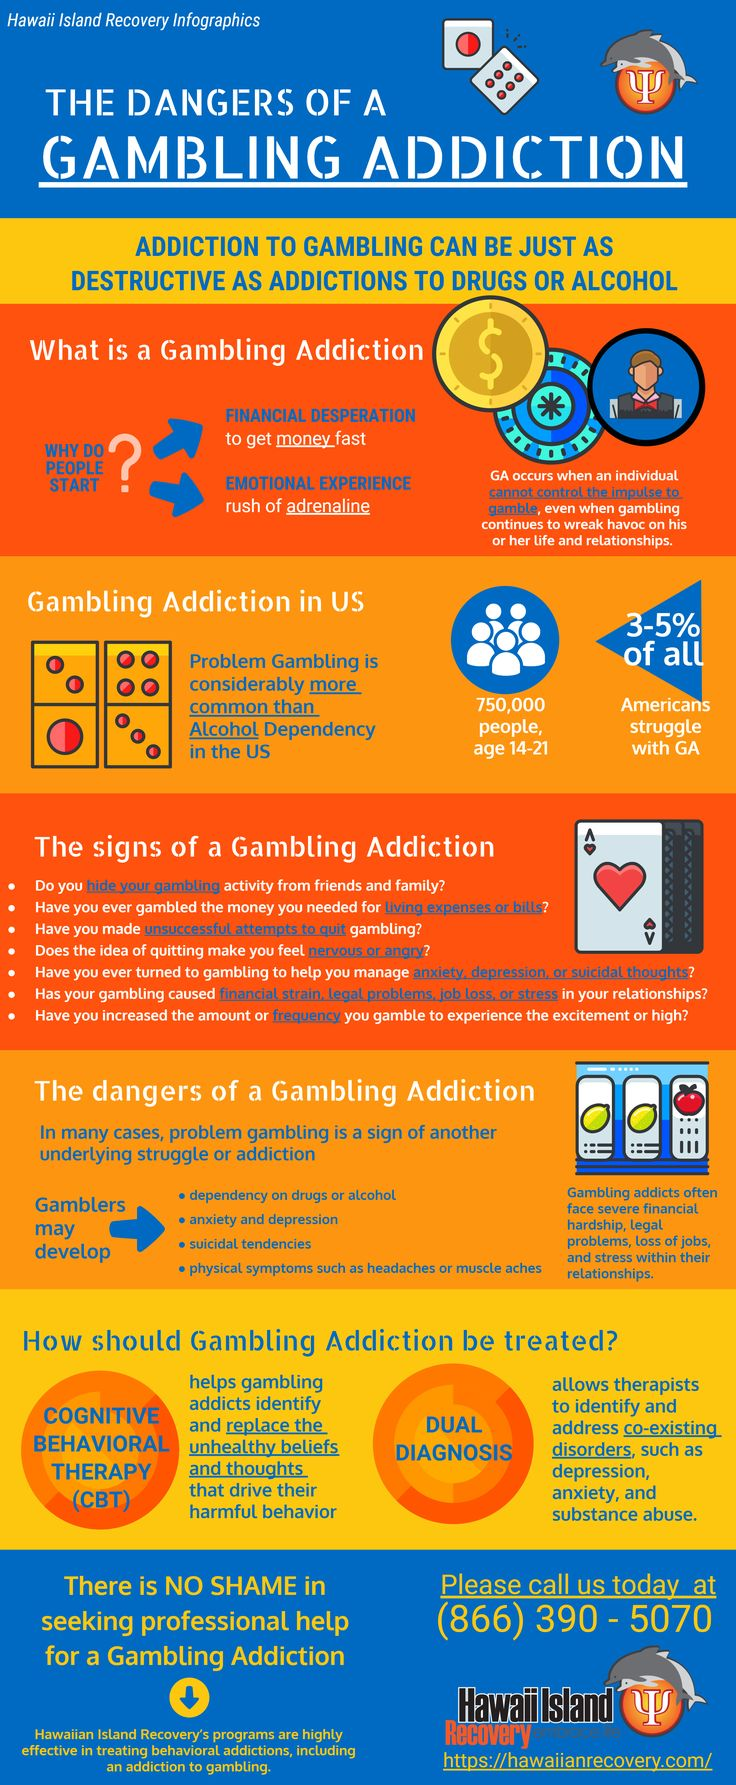 The dangers of a Gambling Addiction www.hawaiianrecovery.com | #addiction #recovery #hawaii